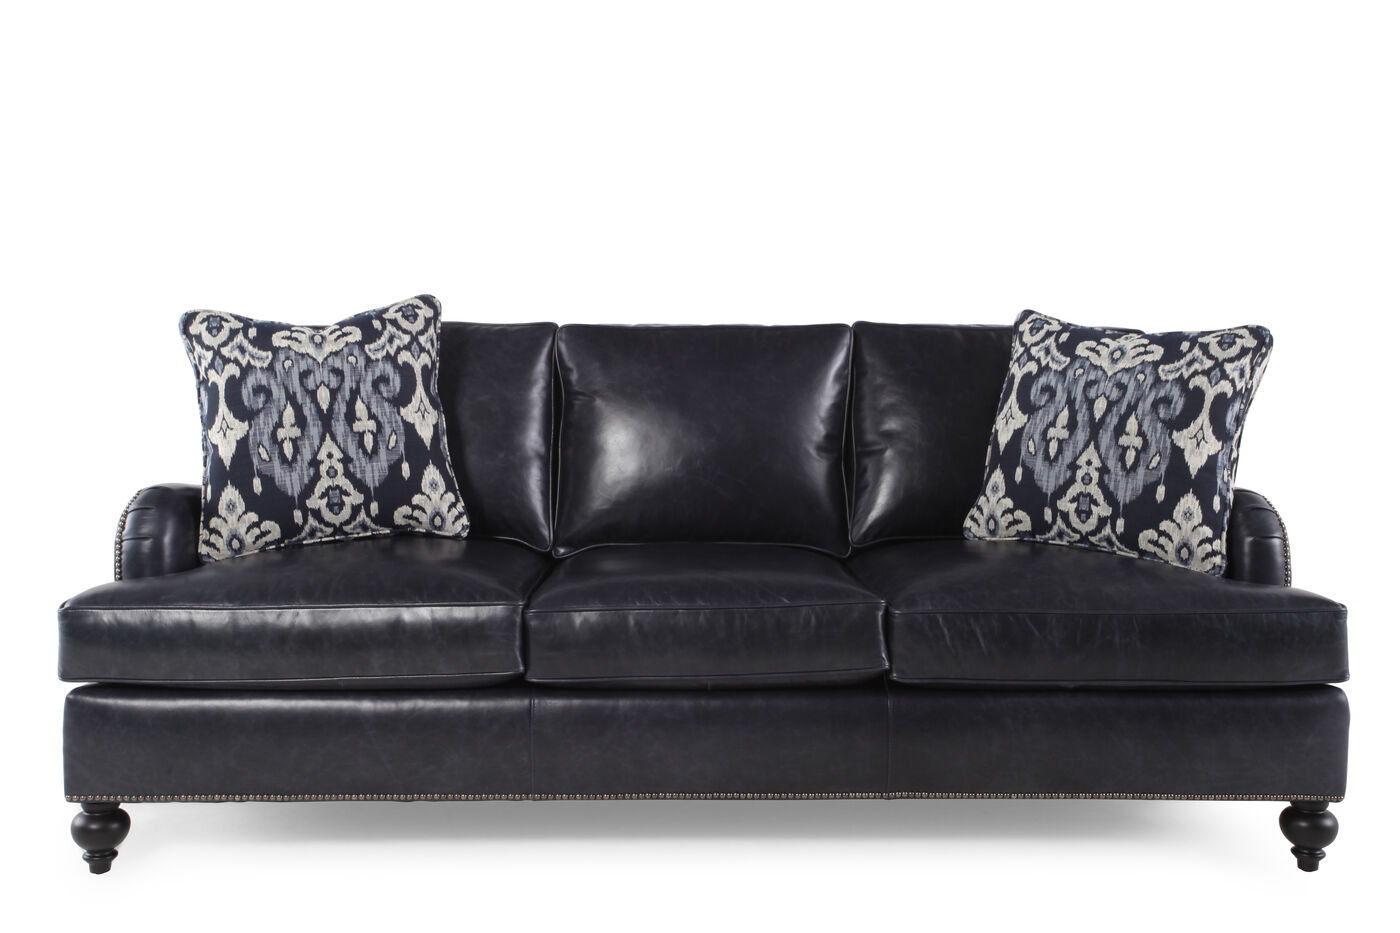 Bernhardt beckford leather sofa mathis brothers furniture for Bernhardt furniture